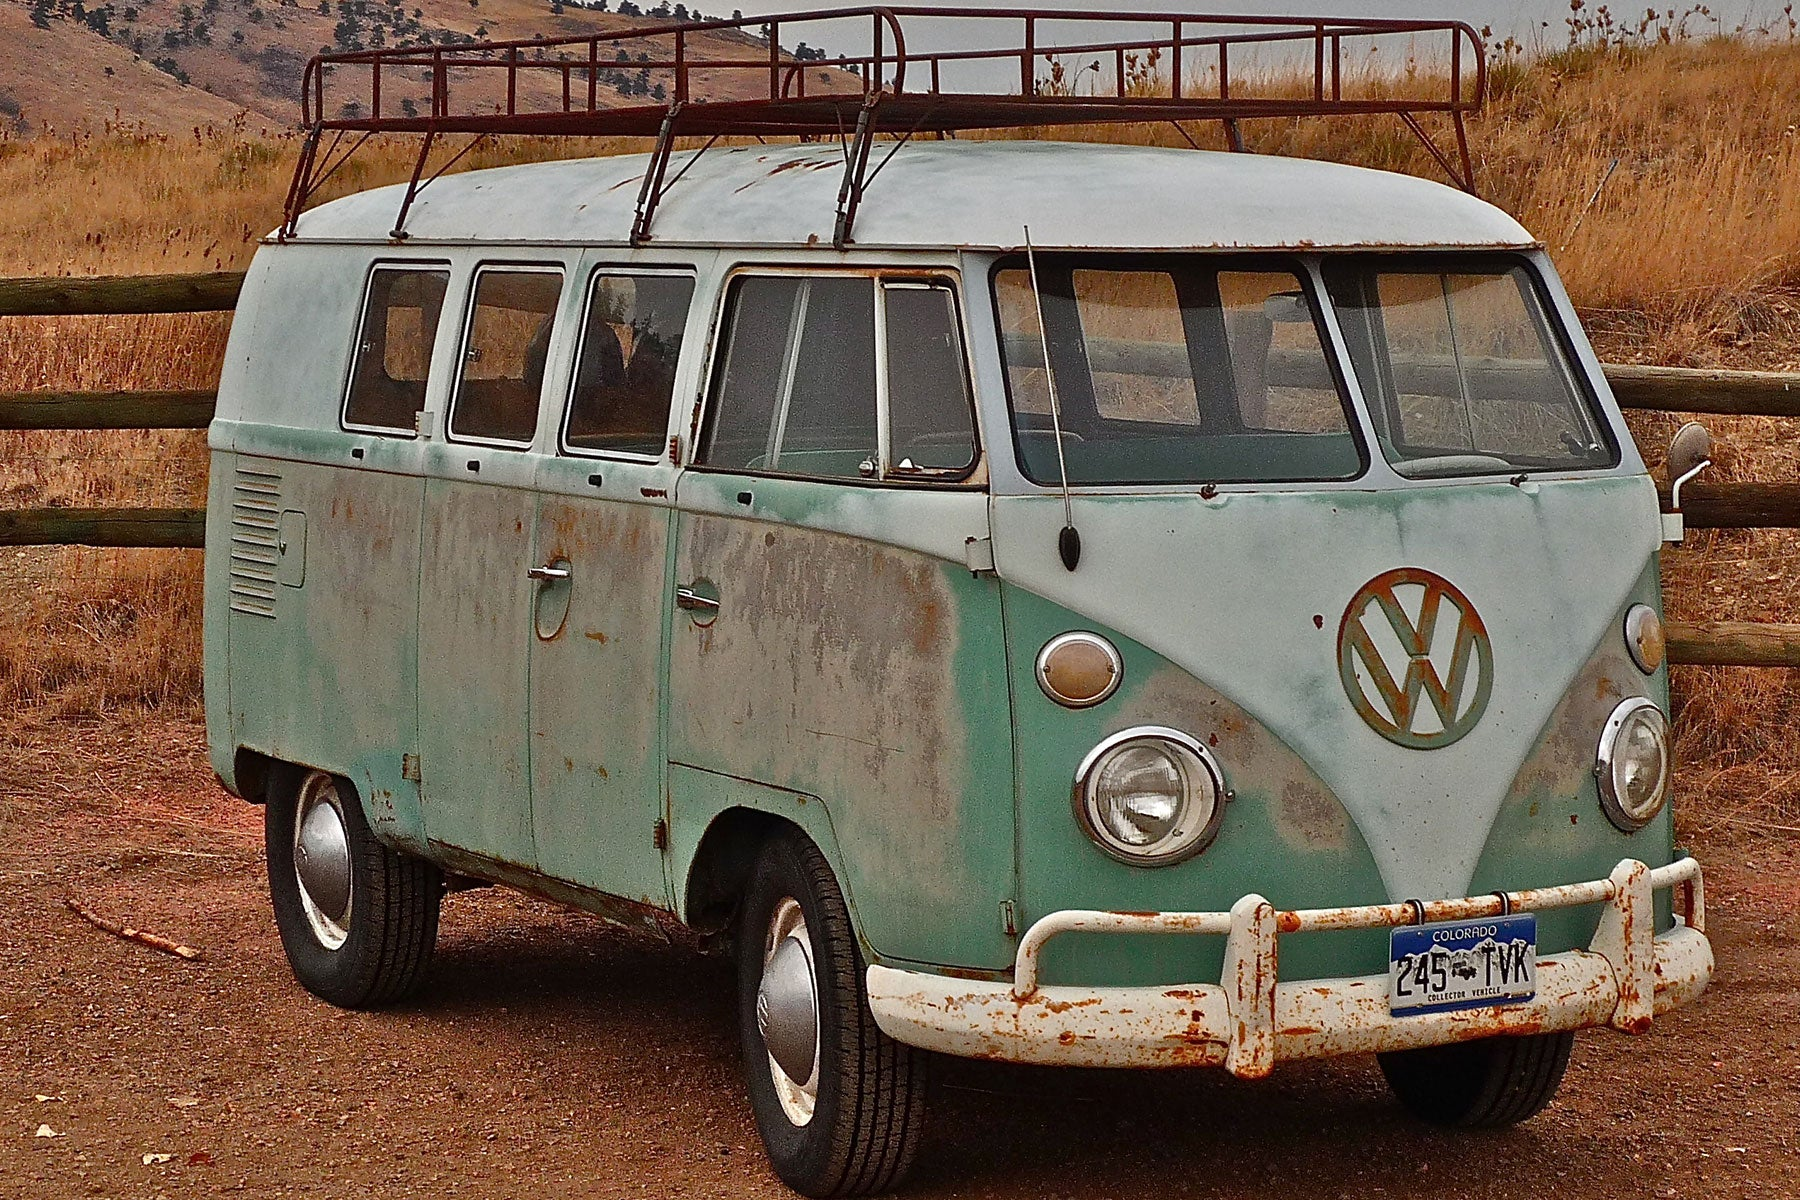 The Volkswagen van where The Pro's Closet started